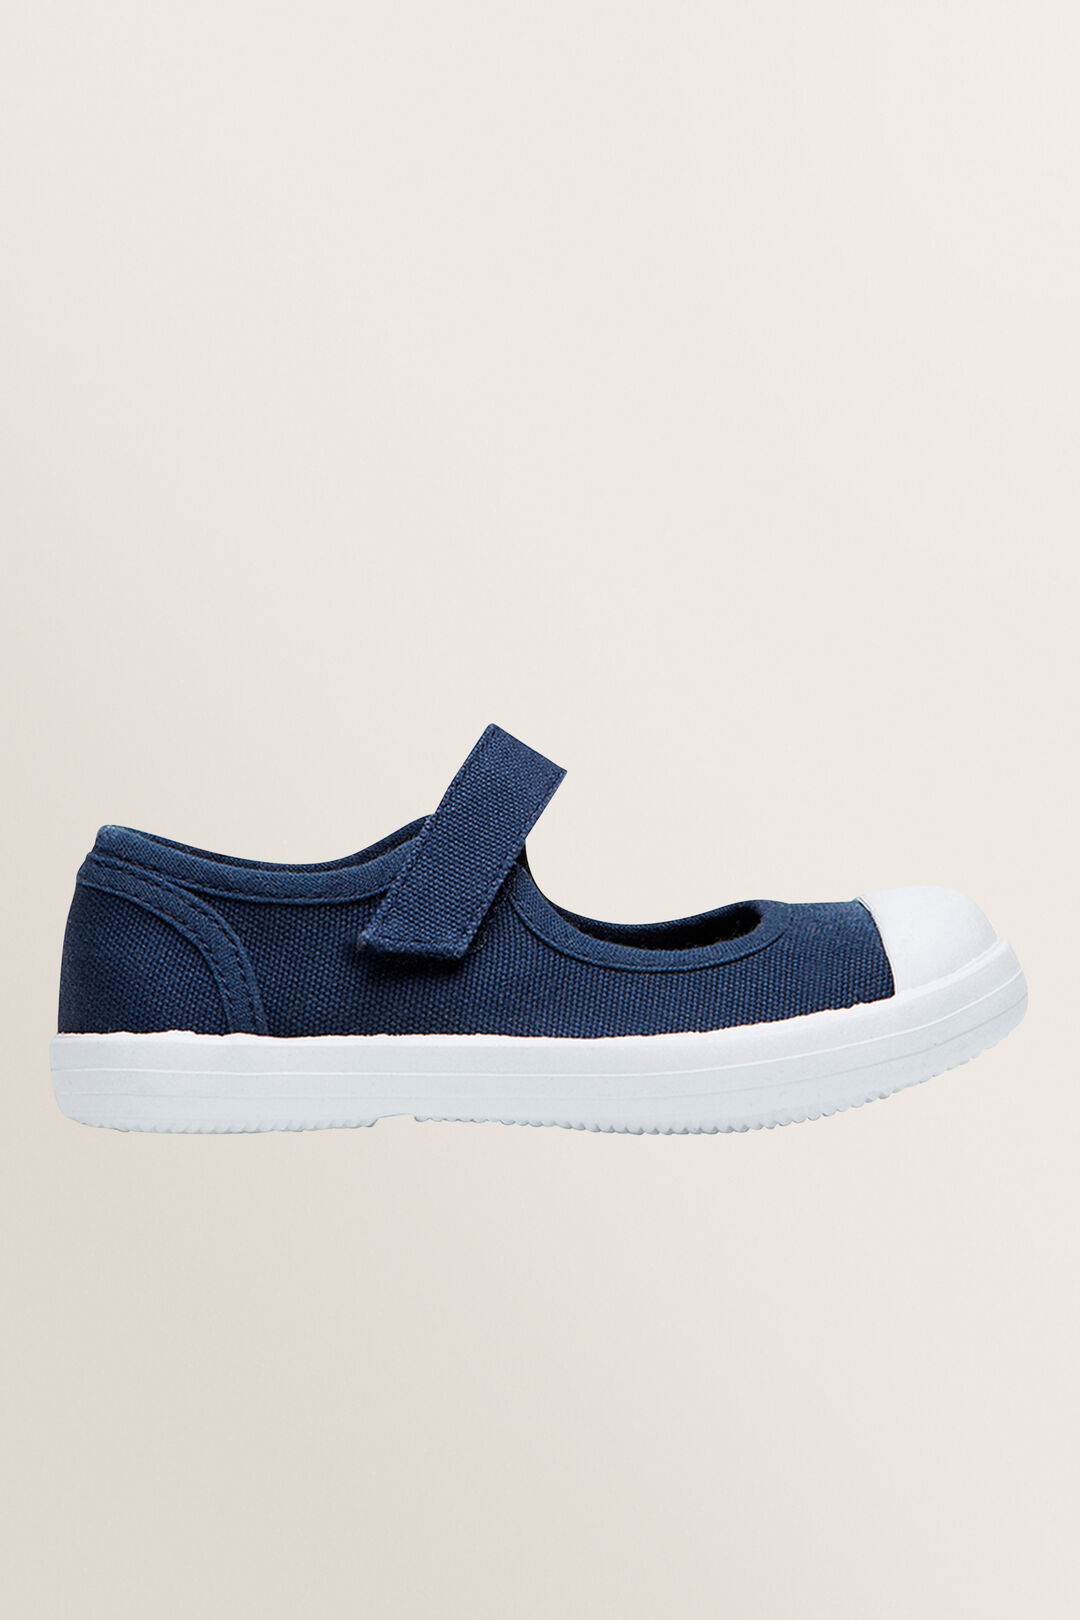 Mary-Jane Canvas Shoes  Navy  hi-res